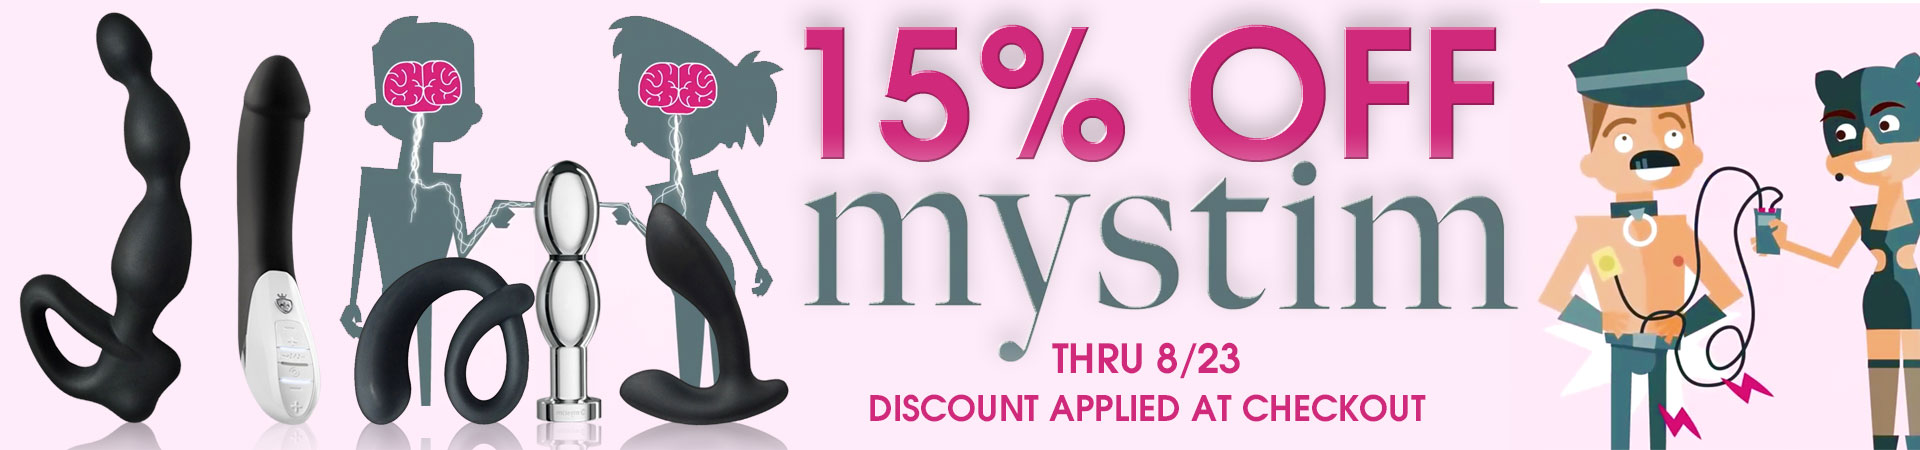 Get 15% Off Mystim Electrosex Toys! Now Through 8/23 - Discount Applied At Checkout